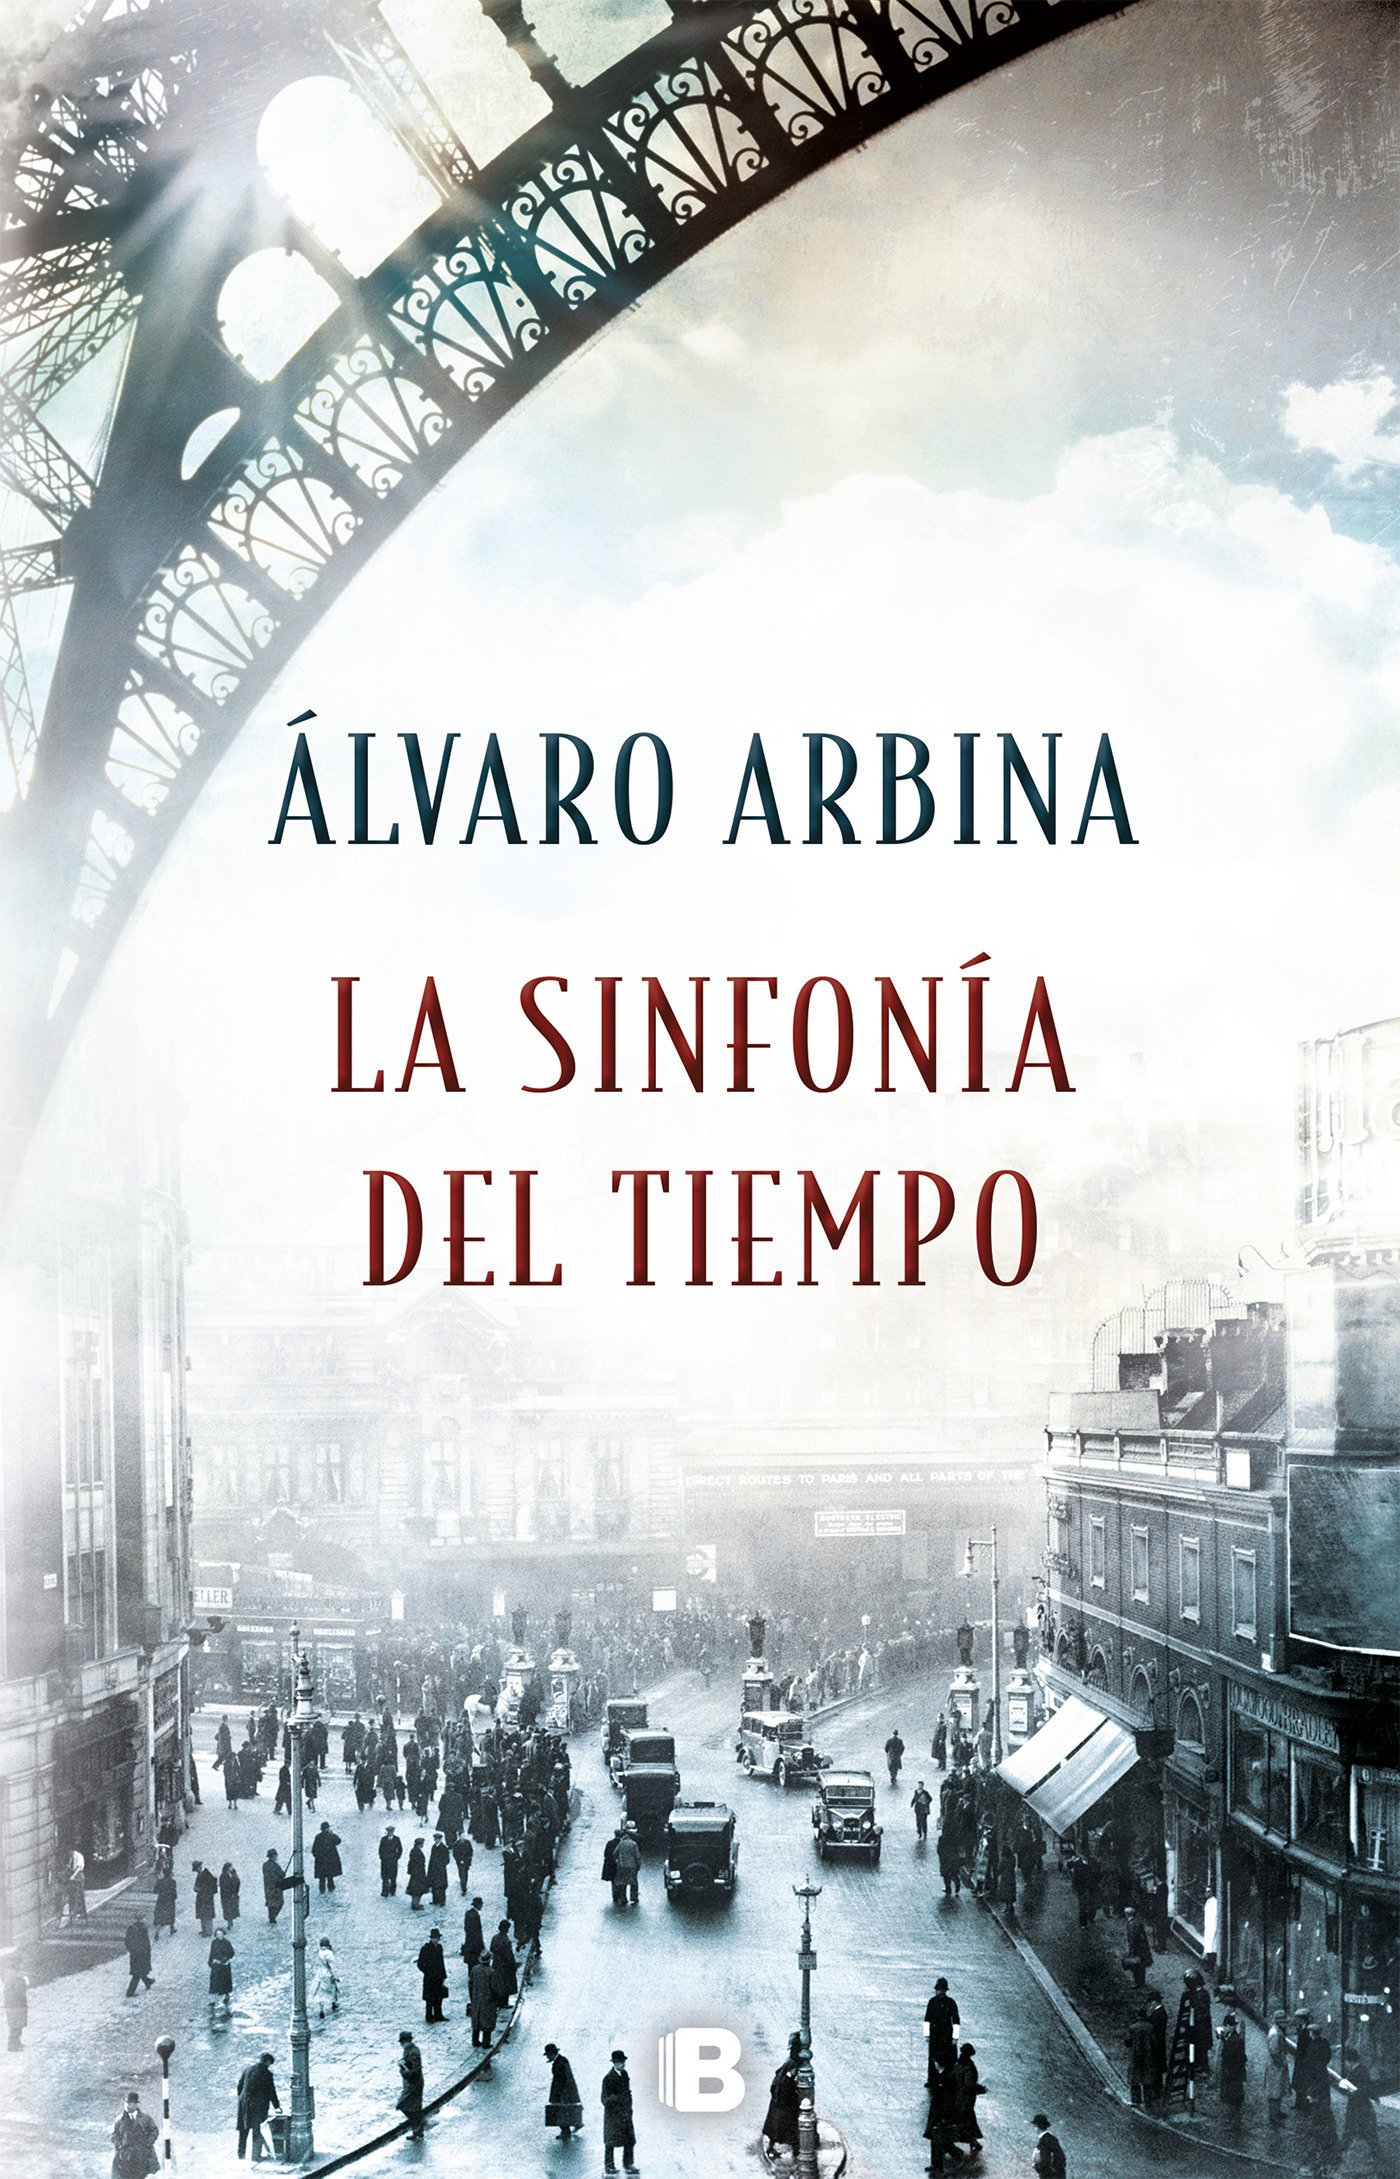 La sinfonía del tiempo / The Symphony of Time (Spanish Edition): Alvaro Arbina: 9788466662765: Amazon.com: Books